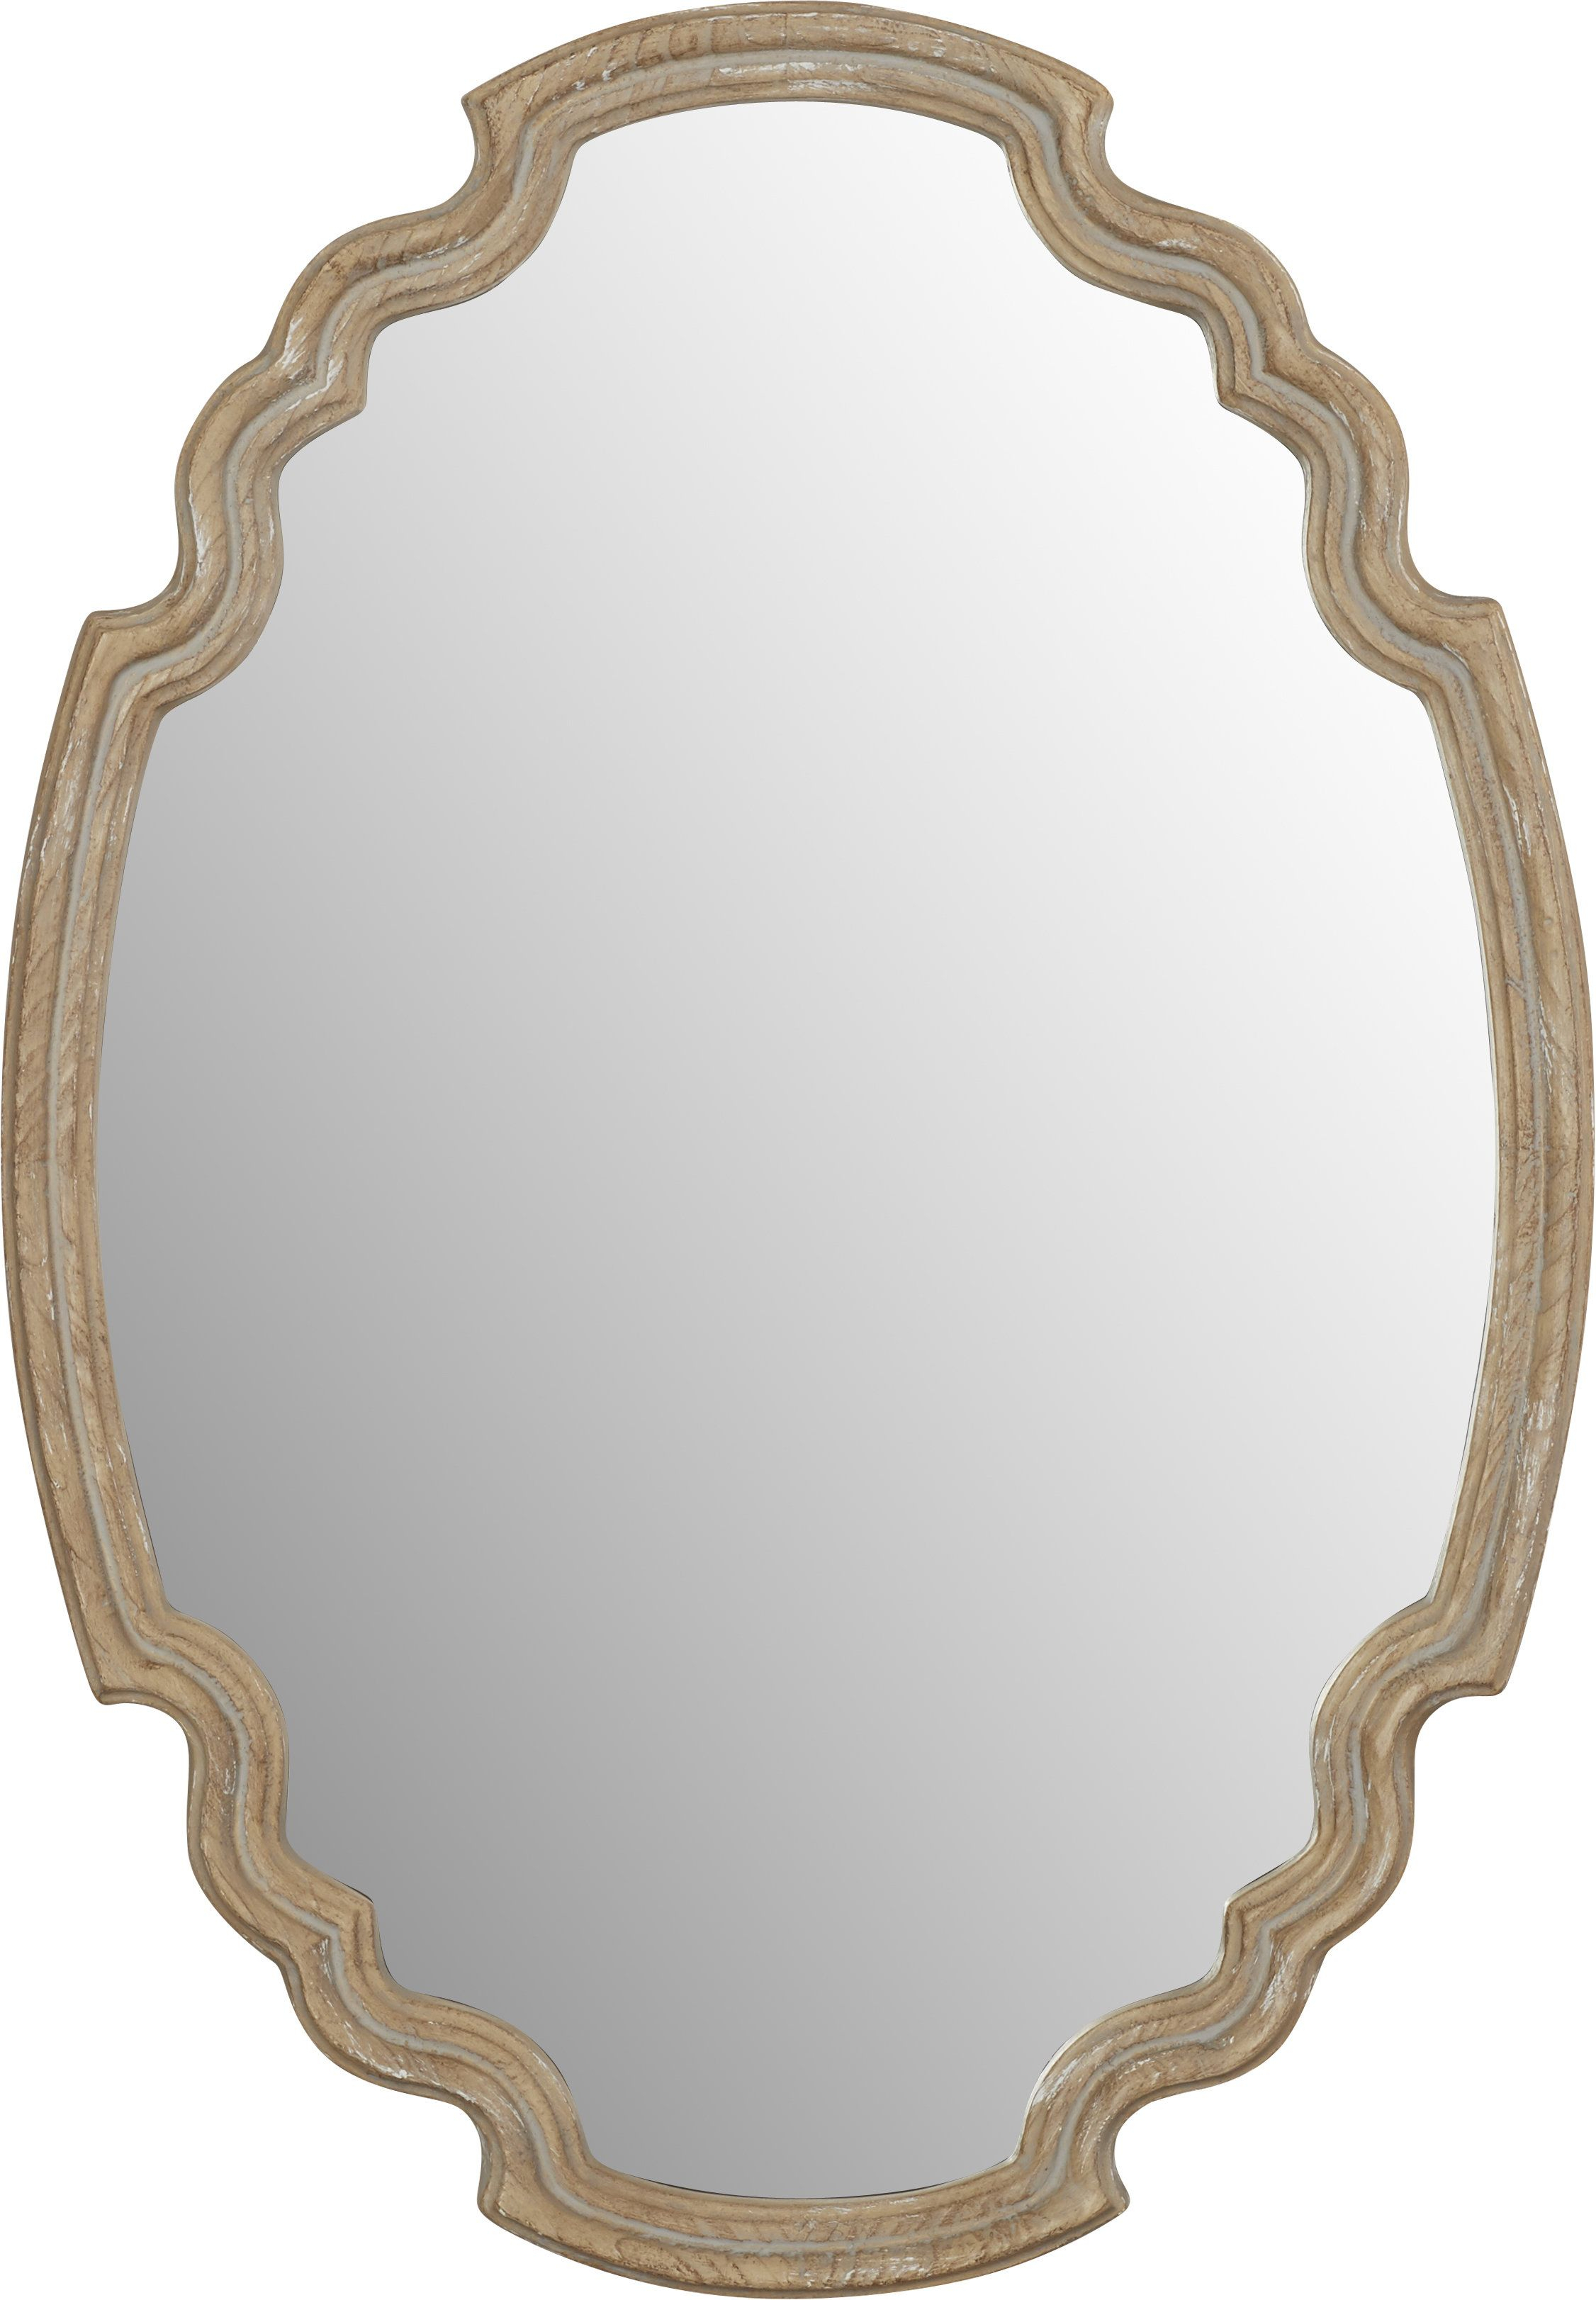 Wood Accent Mirror In 2019 | Products I Love | Mirror, Wood In Wood Accent Mirrors (View 9 of 20)